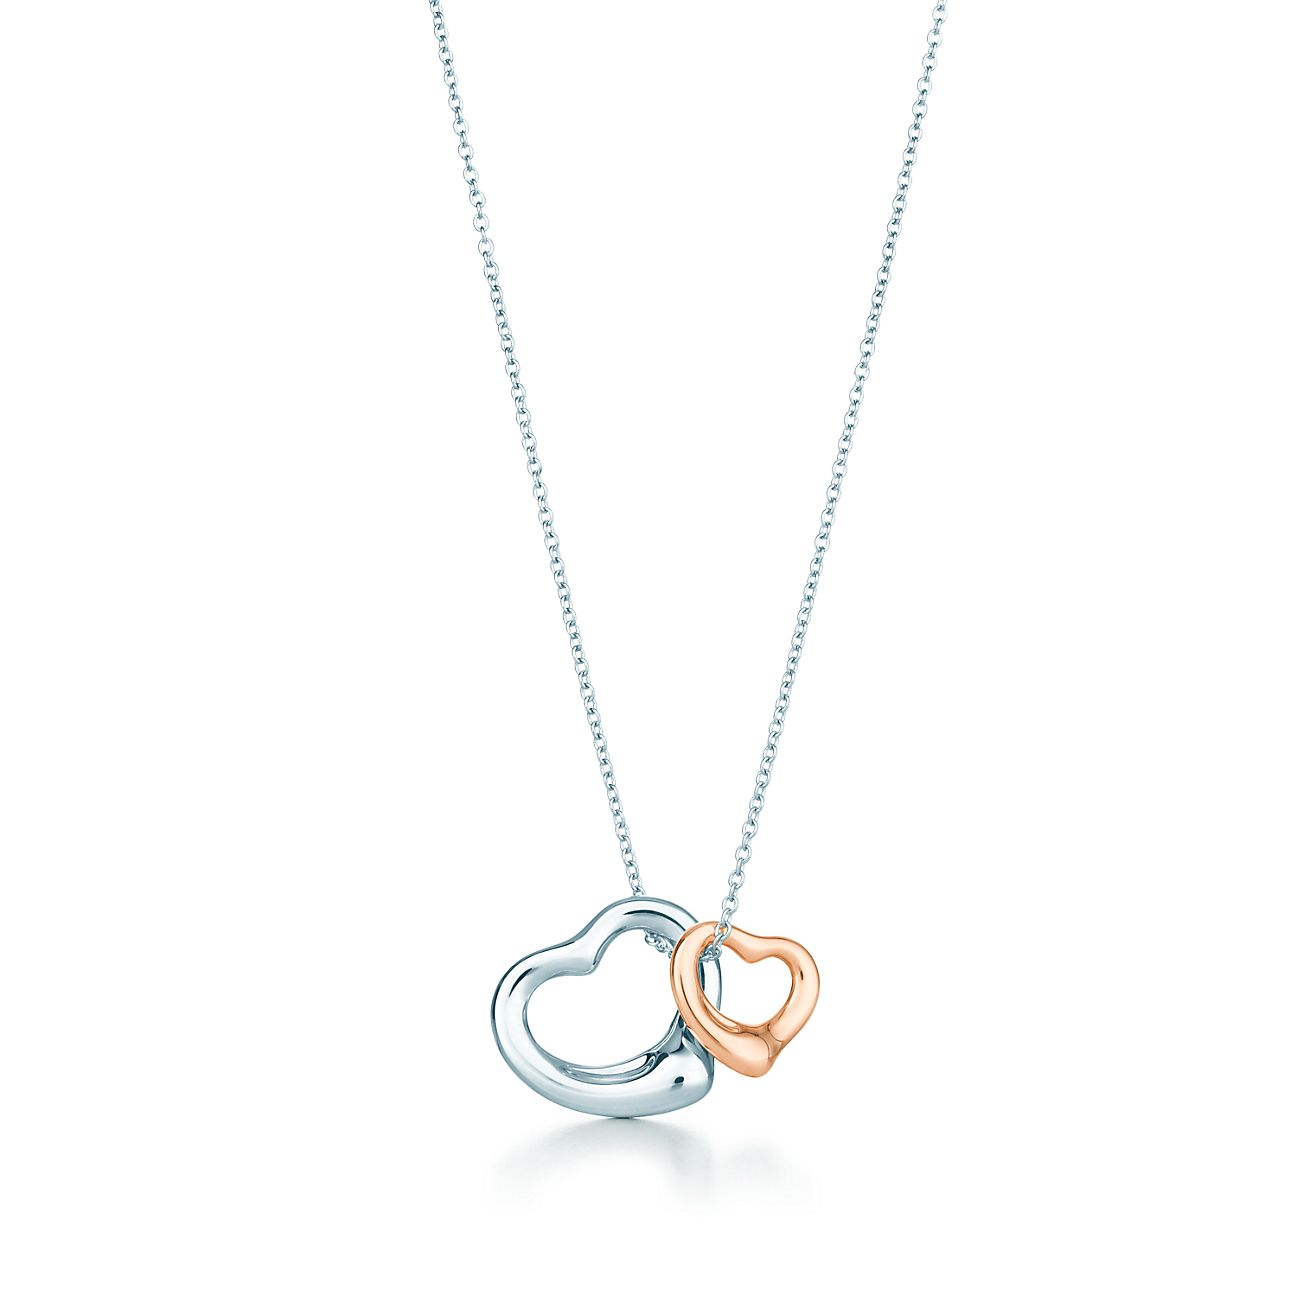 Elsa Peretti Open Heart pendant in sterling silver with diamonds Tiffany & Co.